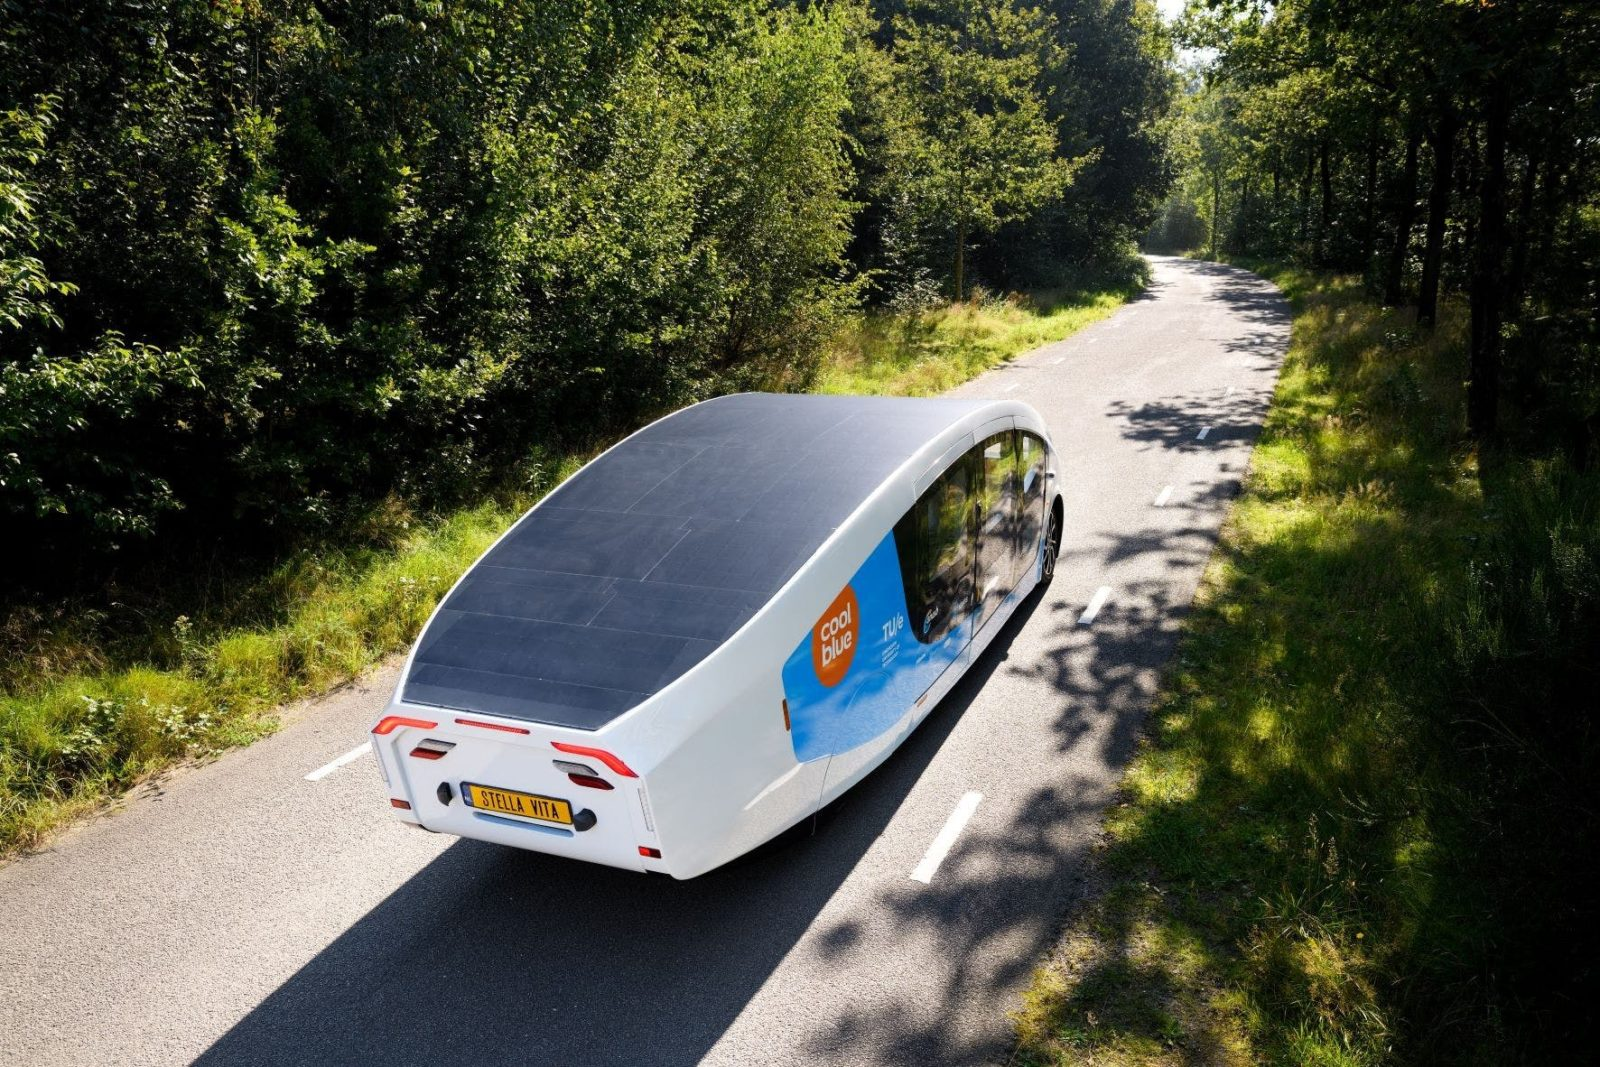 world's-first-solar-powered-mobile-home-to-set-on-1,800-mile-journey